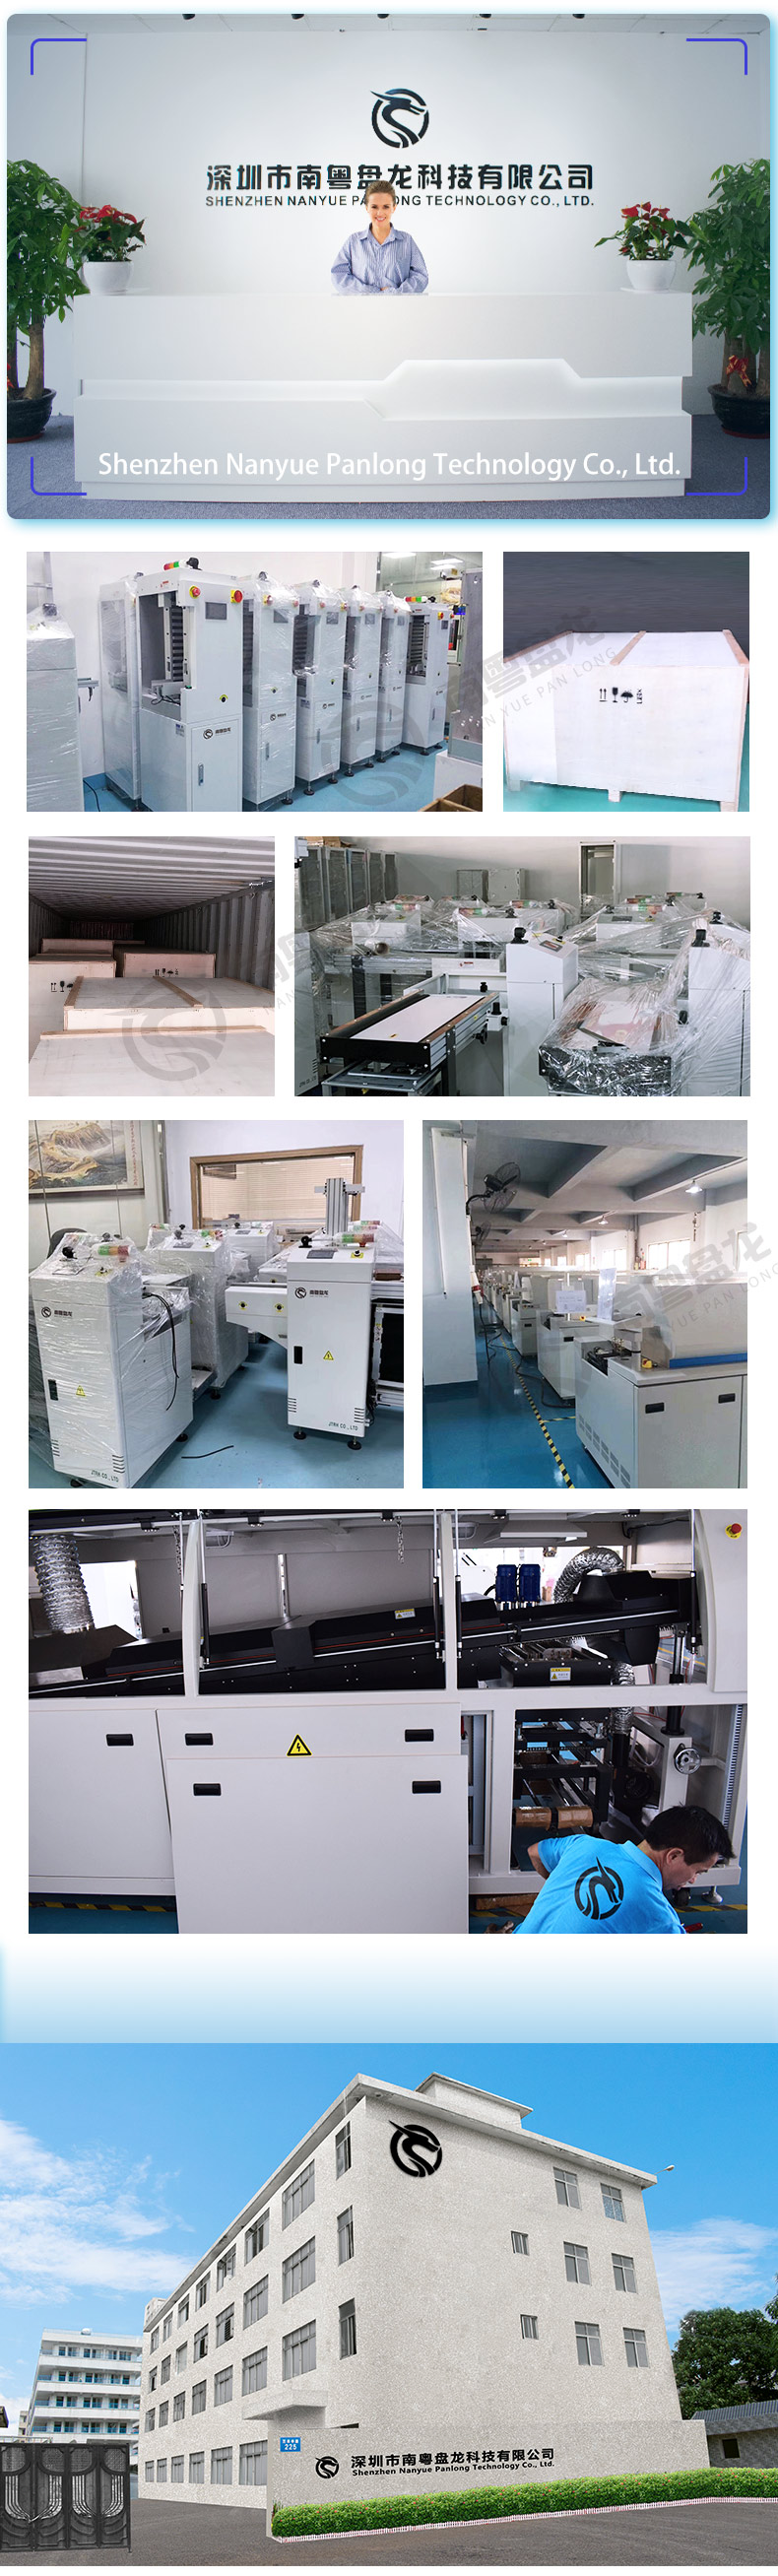 Brand new reflow soldering smt reflow oven Lead free reflow oven with high quality